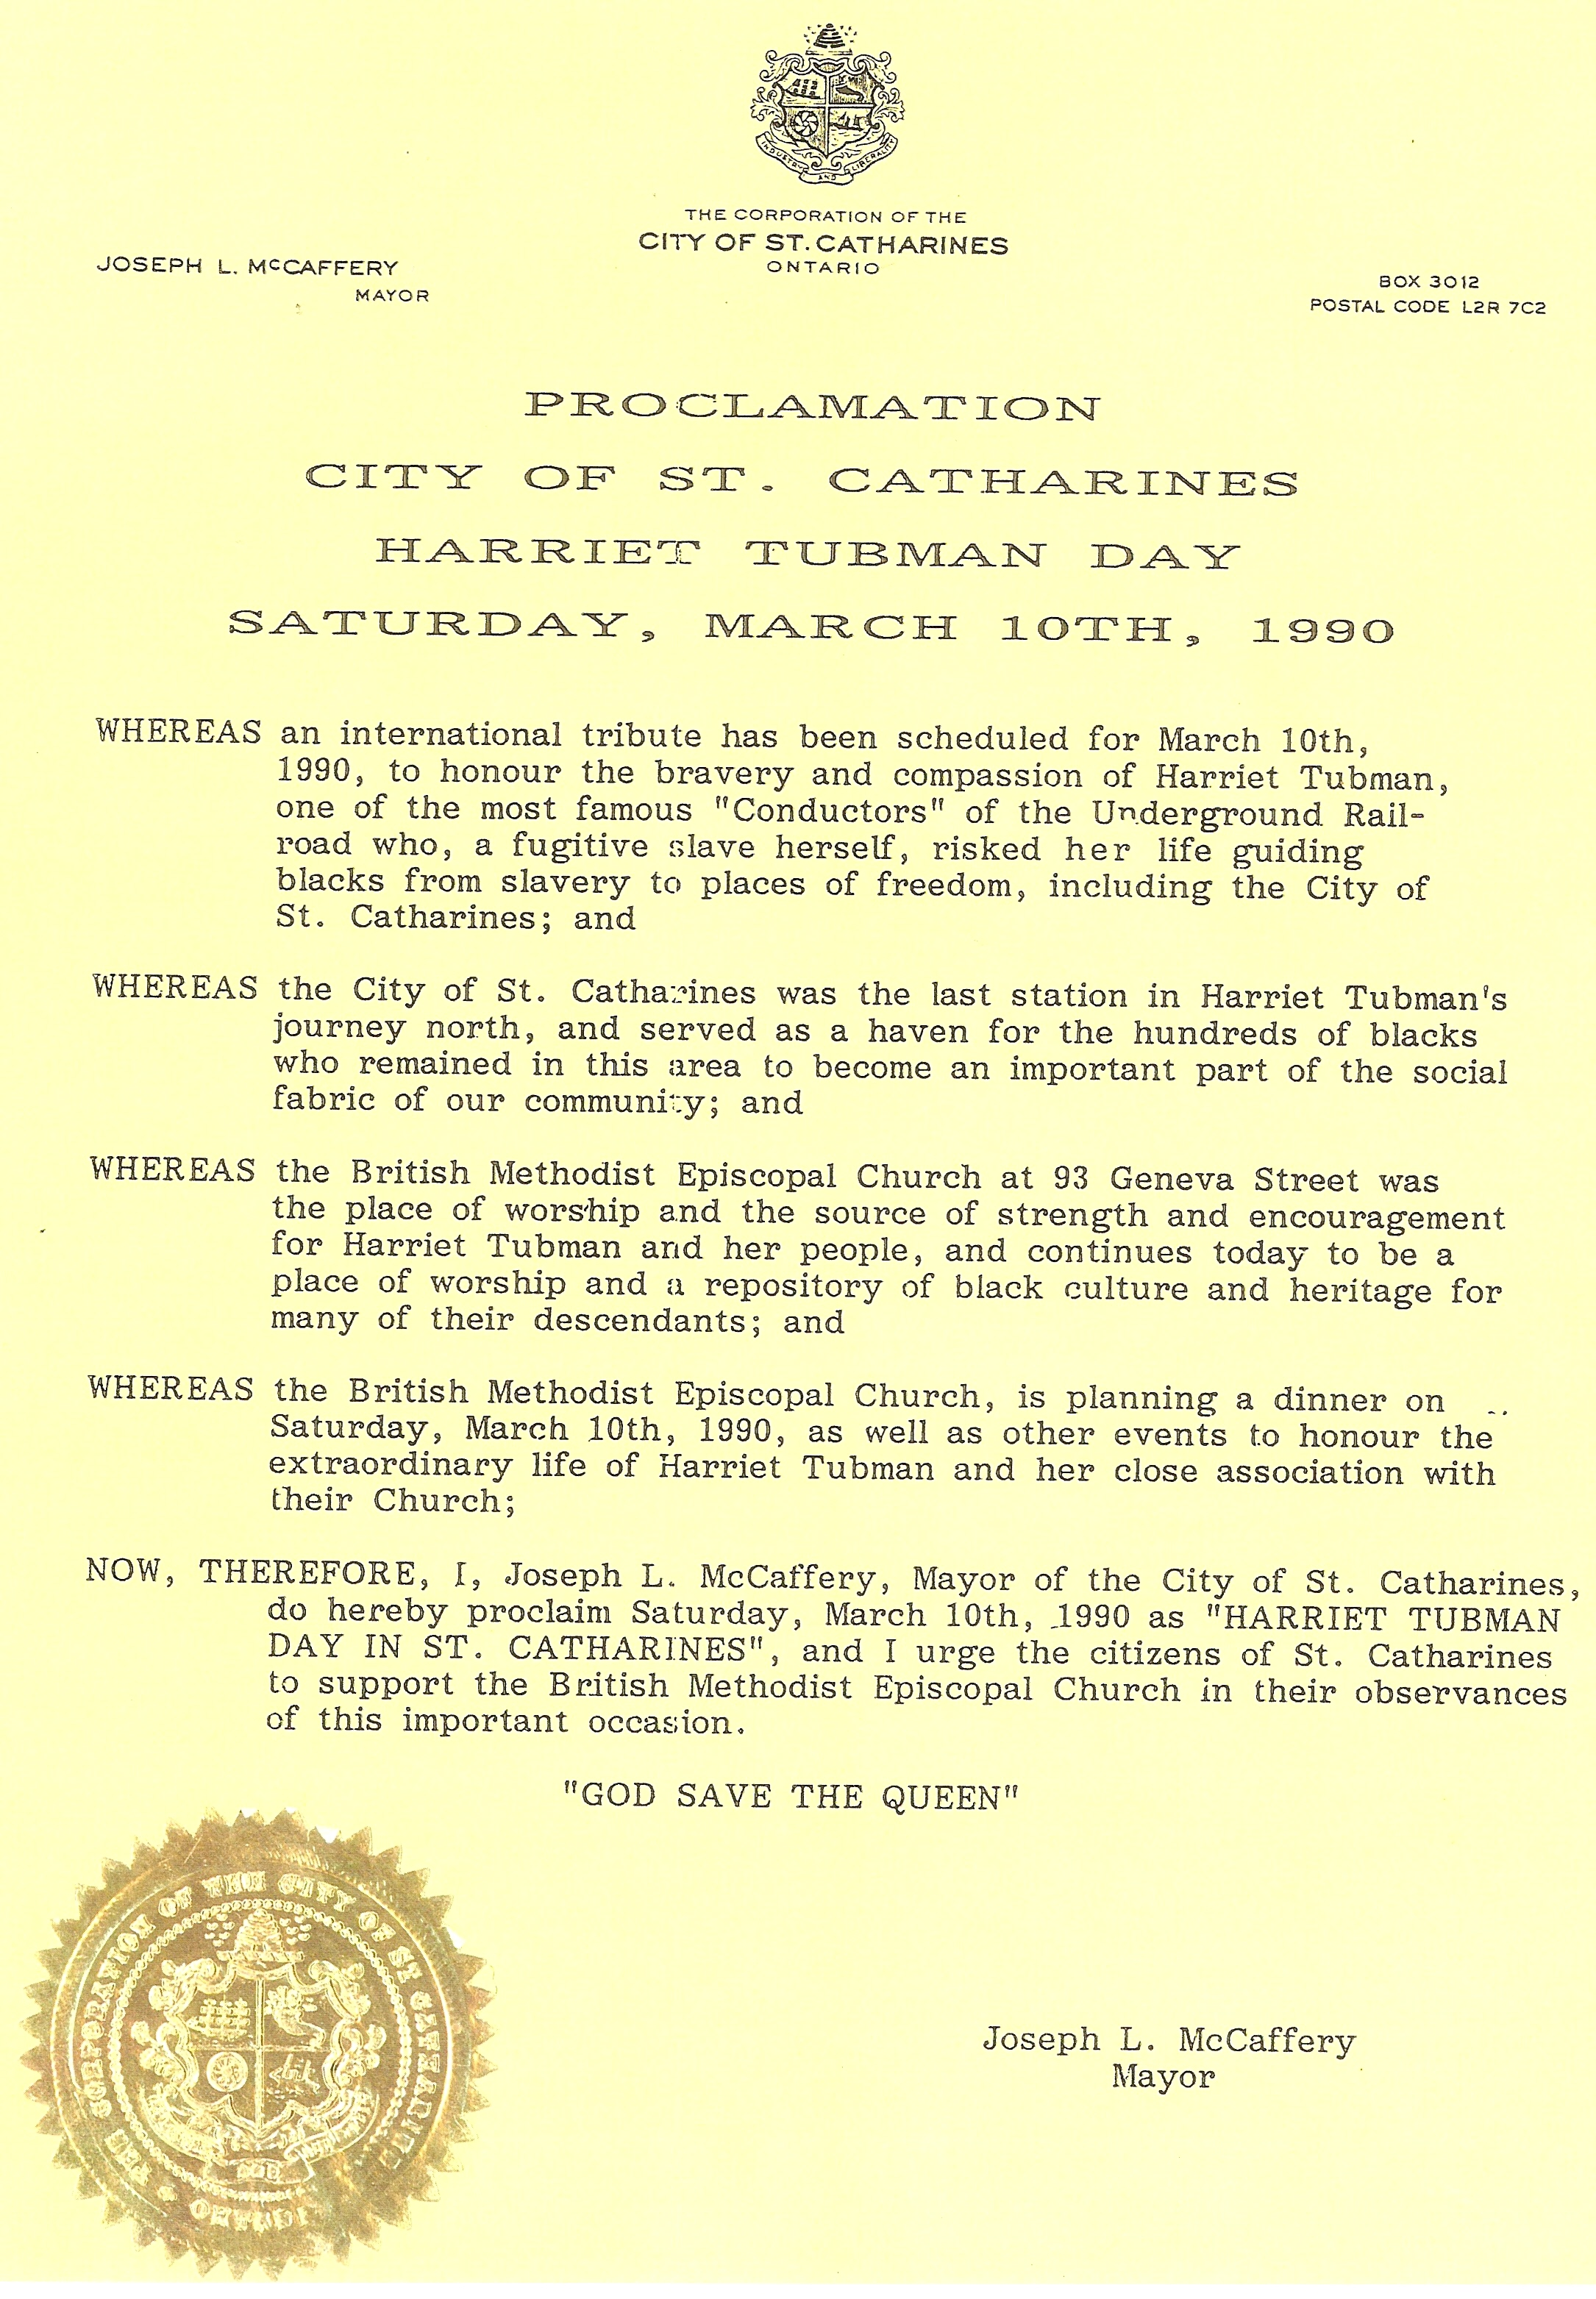 Worksheets Harriet Tubman Worksheets harriet tubman day march 10 1990 view proclamation